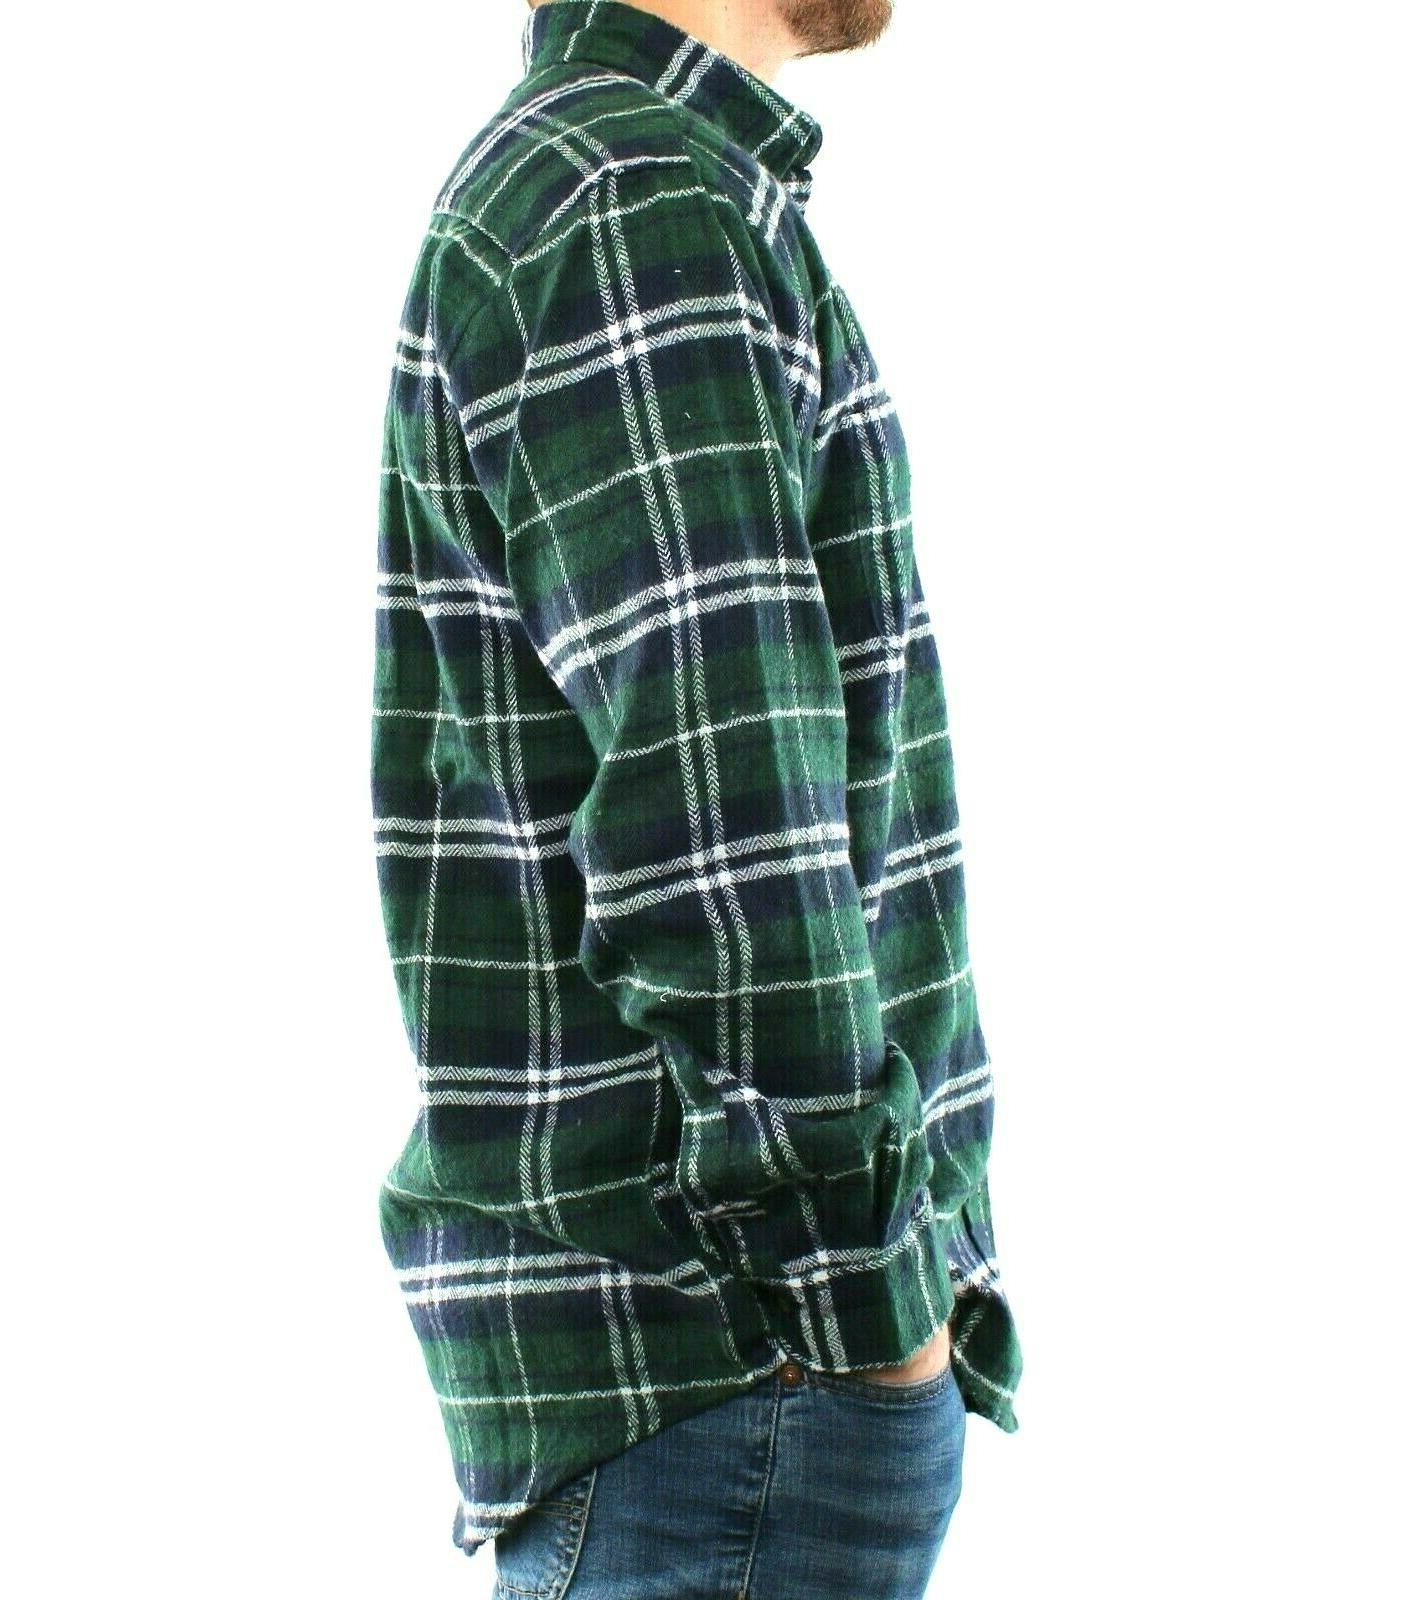 St. Bay Flannel Shirt Men's Sleeve Casual Top